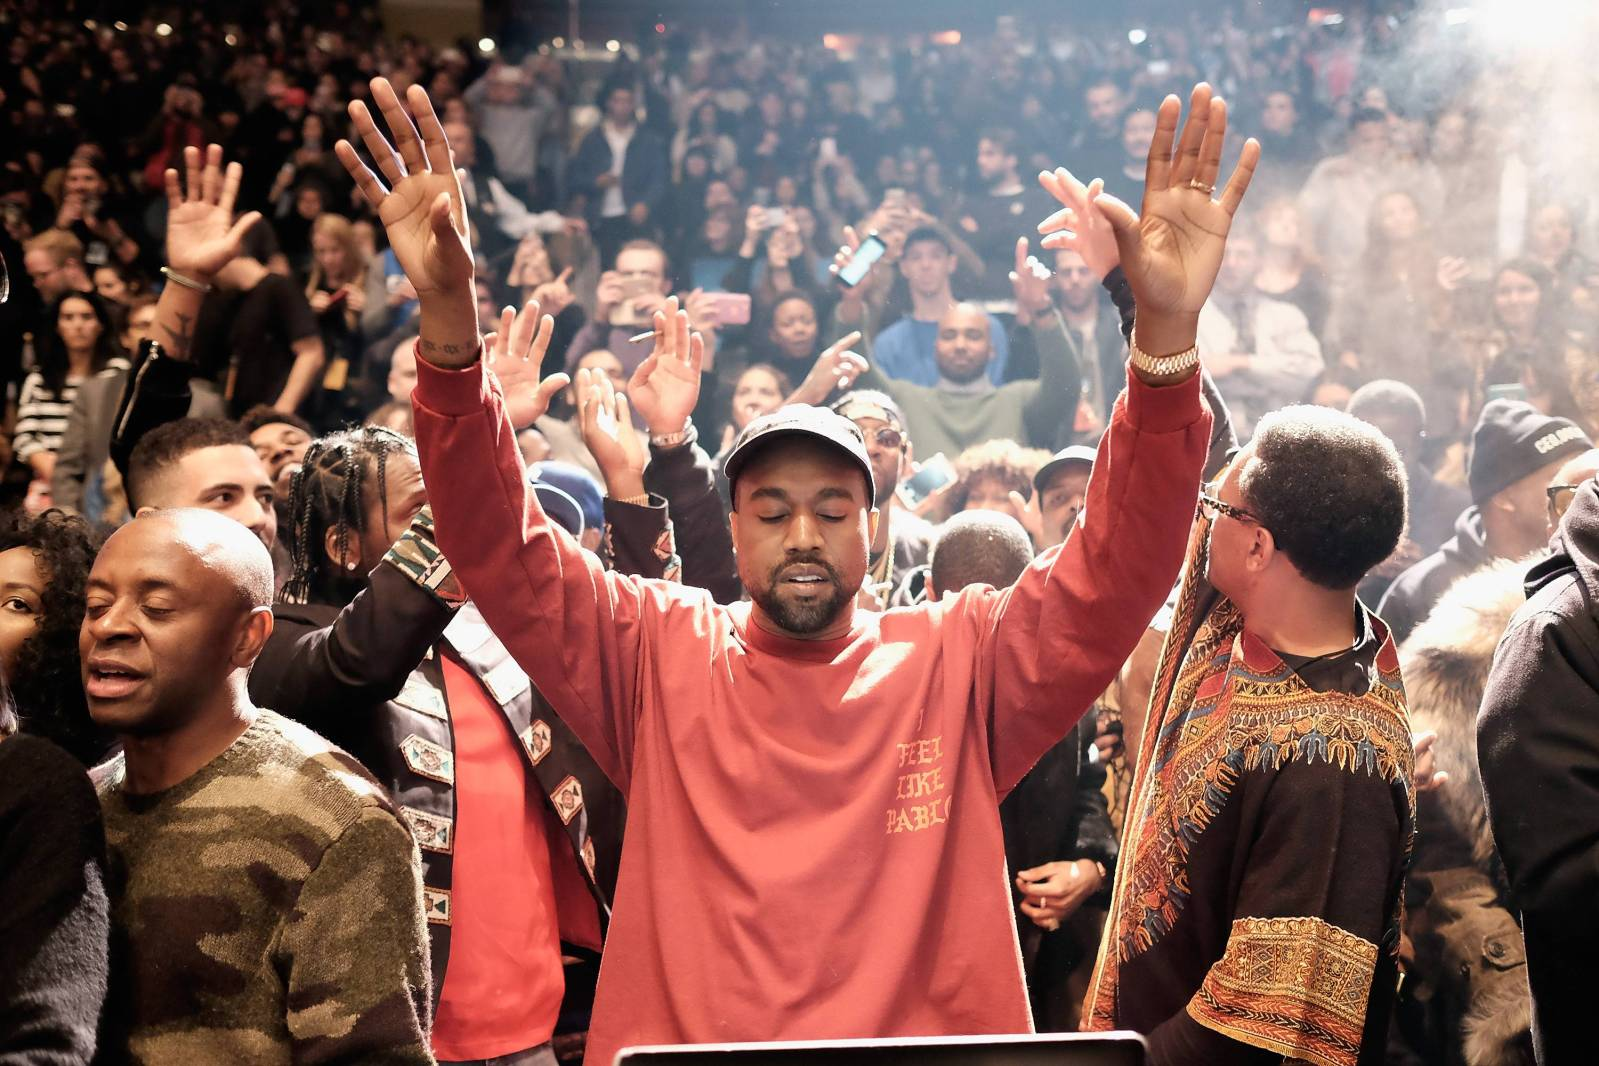 TBZ349 HQ Definition Kanye West Wallpaper Wallpapers